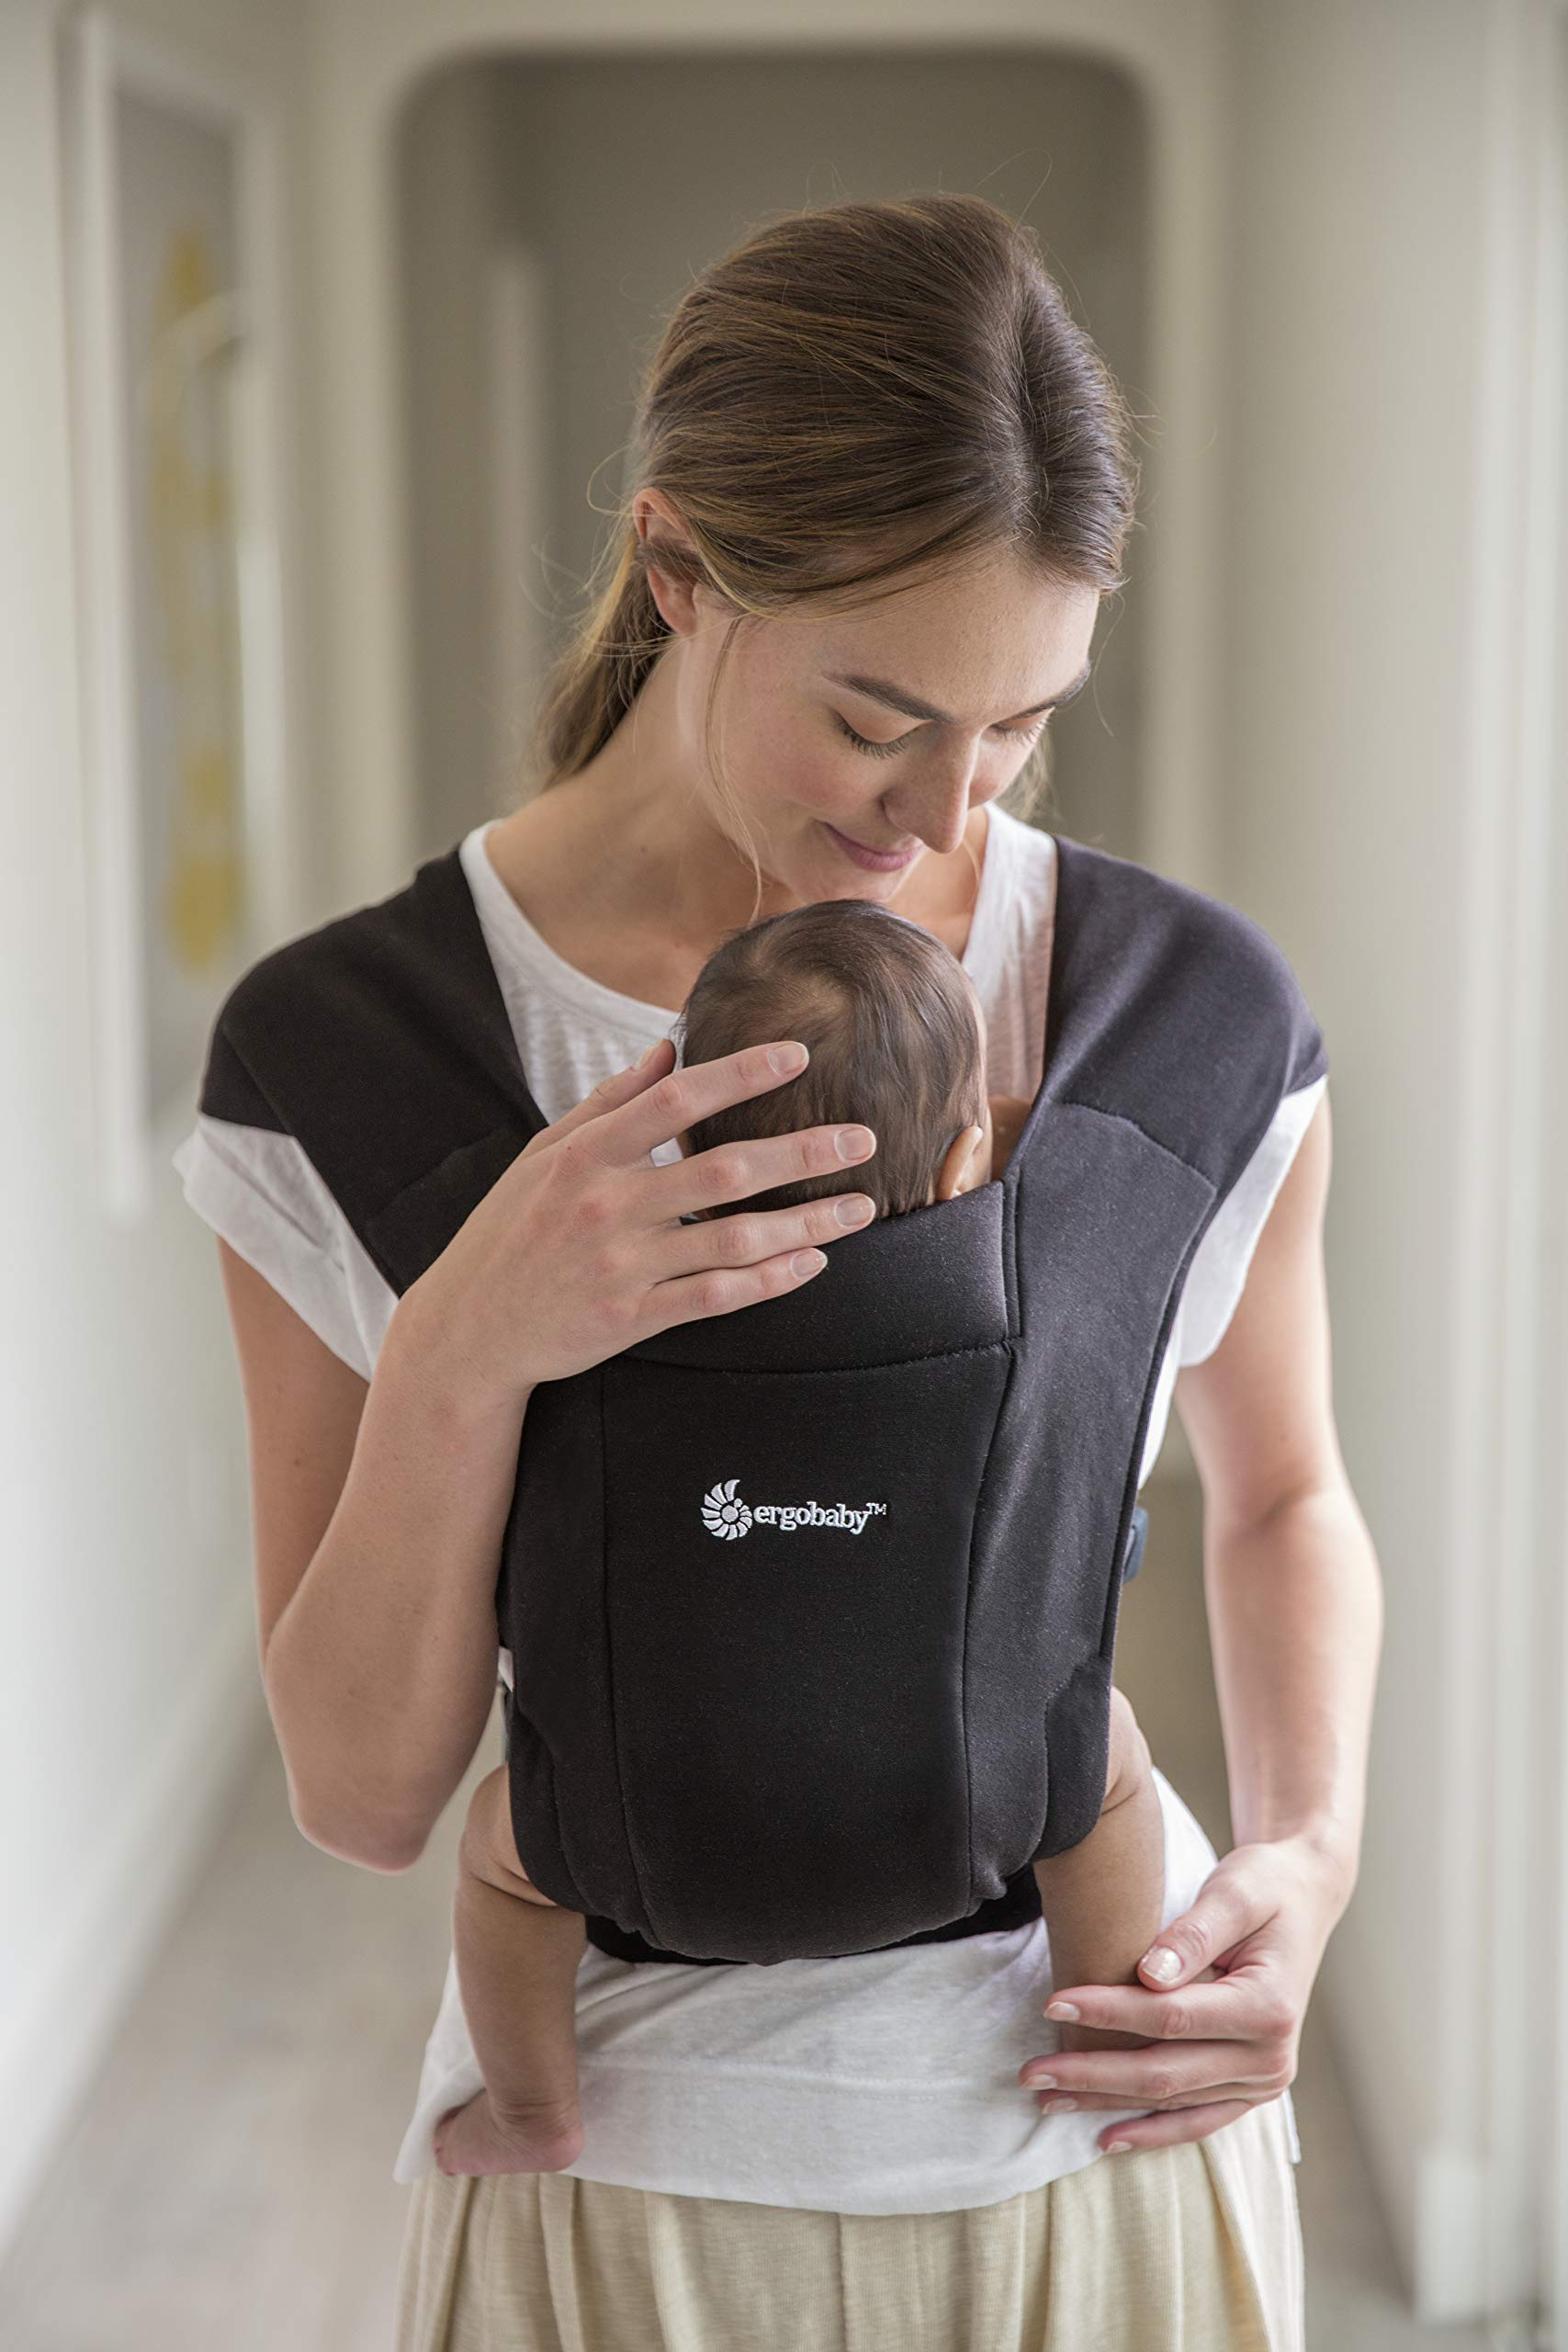 """ErgobabyEmbraceBaby Carrier for Newborns from Birth with Head Support, Extra Soft and Ergonomic (Pure Black) Ergobaby ERGONOMIC BABY CARRIER FROM BIRTH - Carry your newborn baby (3.2 - 11.3kg) snuggled close to you. The baby carrier supports the ergonomic frog-leg position (""""M"""" shape position) of the baby. NEW - The Ergobaby Embrace 2-position Carrier has been specially developed for newborns and babies. A baby carry system for quick and easy use. ULTRA-LIGHT & SUPER SOFT - Less material against the child and open-sided to allow good air circulation. Made from super soft jersey fabric, Oeko-Tex100 certified. Lightweight carrier (approx. 480g). 4"""